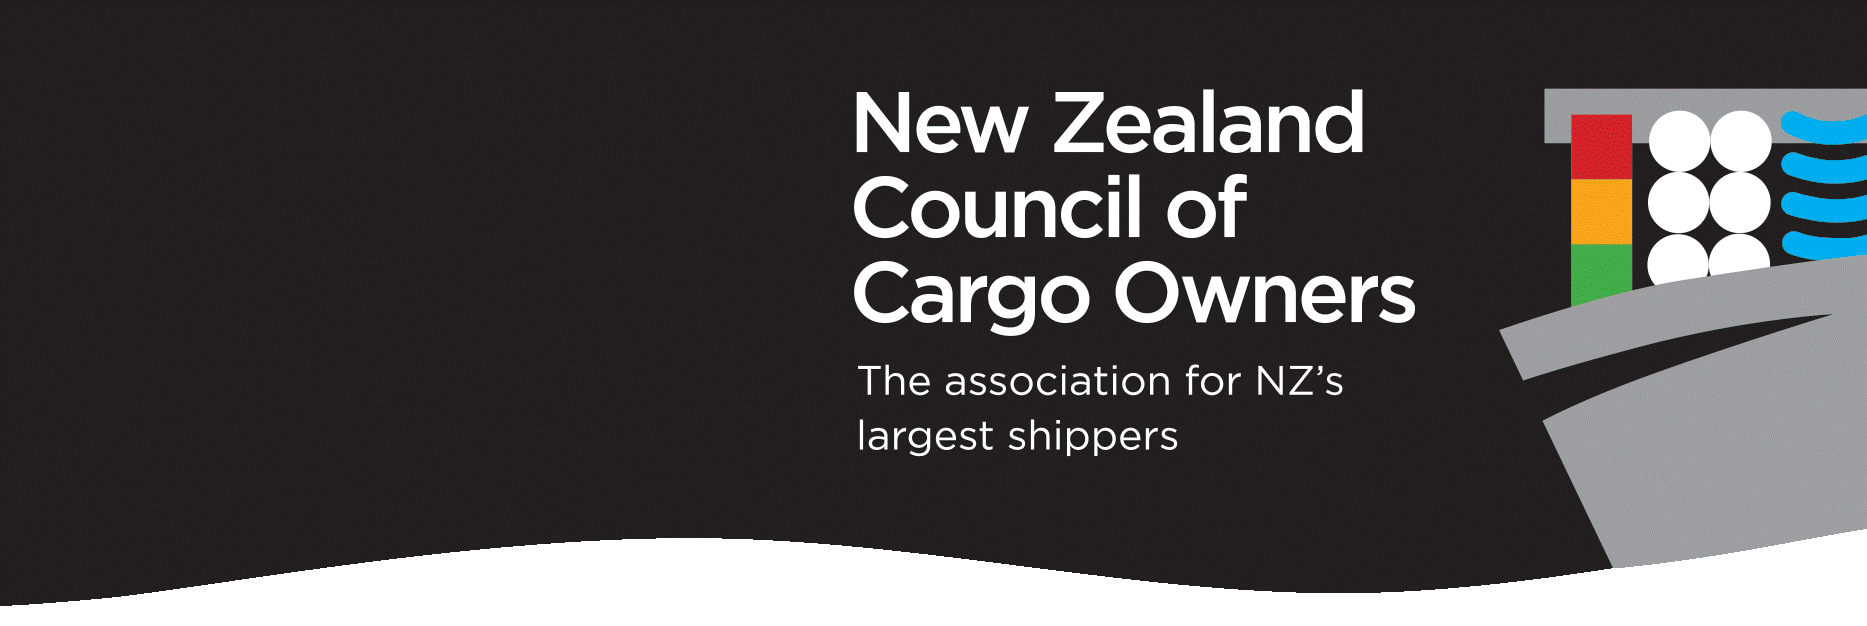 New Zealand Council of Cargo Owners